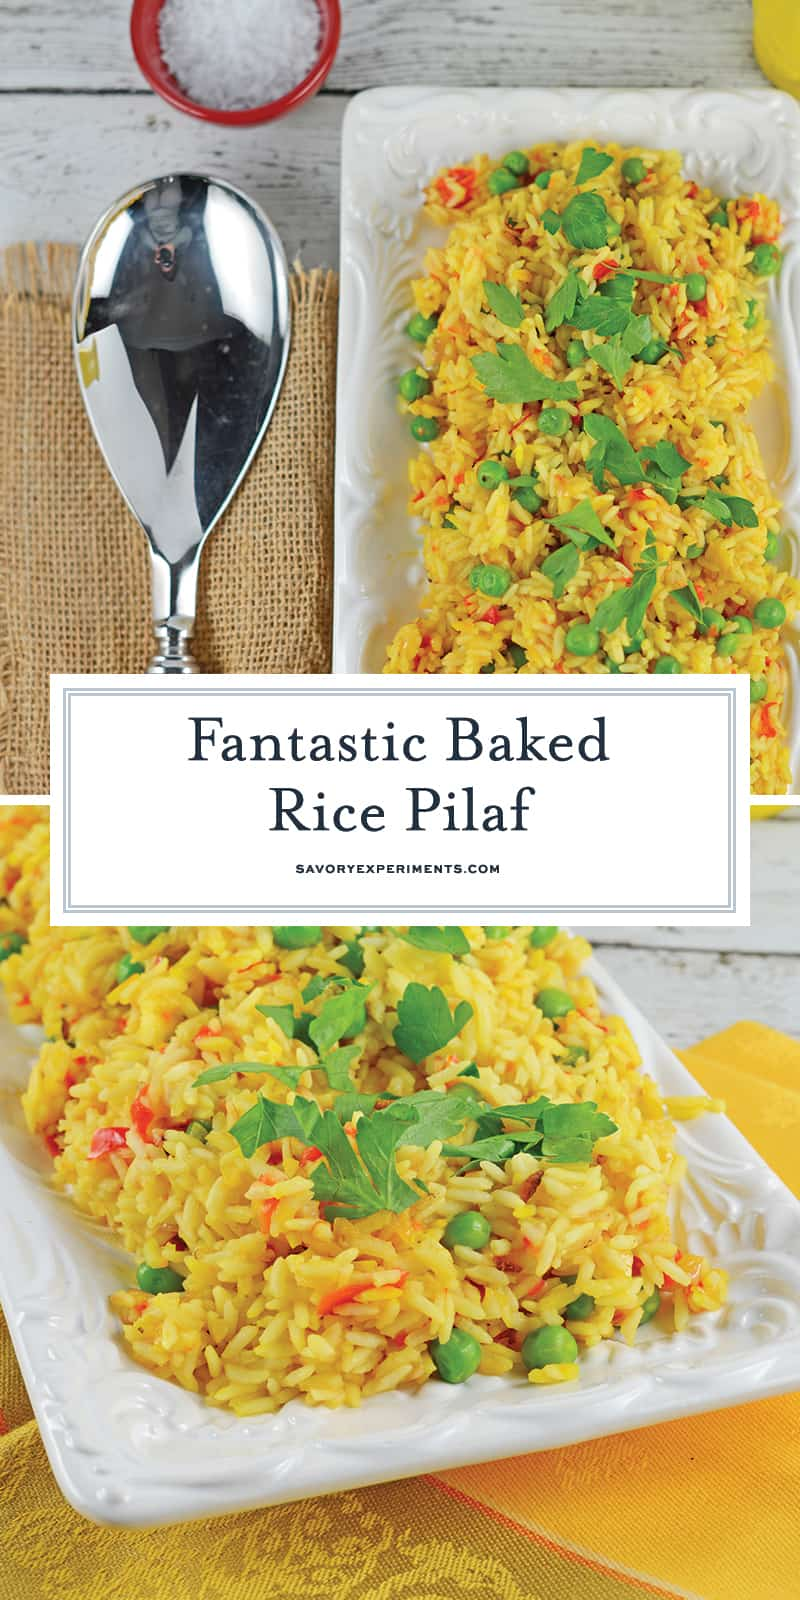 You'll never buy boxed rice pilaf ever again once you've made Bake Rice Pilaf! This is a fool proof way of getting the perfect rice every time… in the oven! #ricepilafrecipe #bakedricepilaf www.savoryexperiments.com